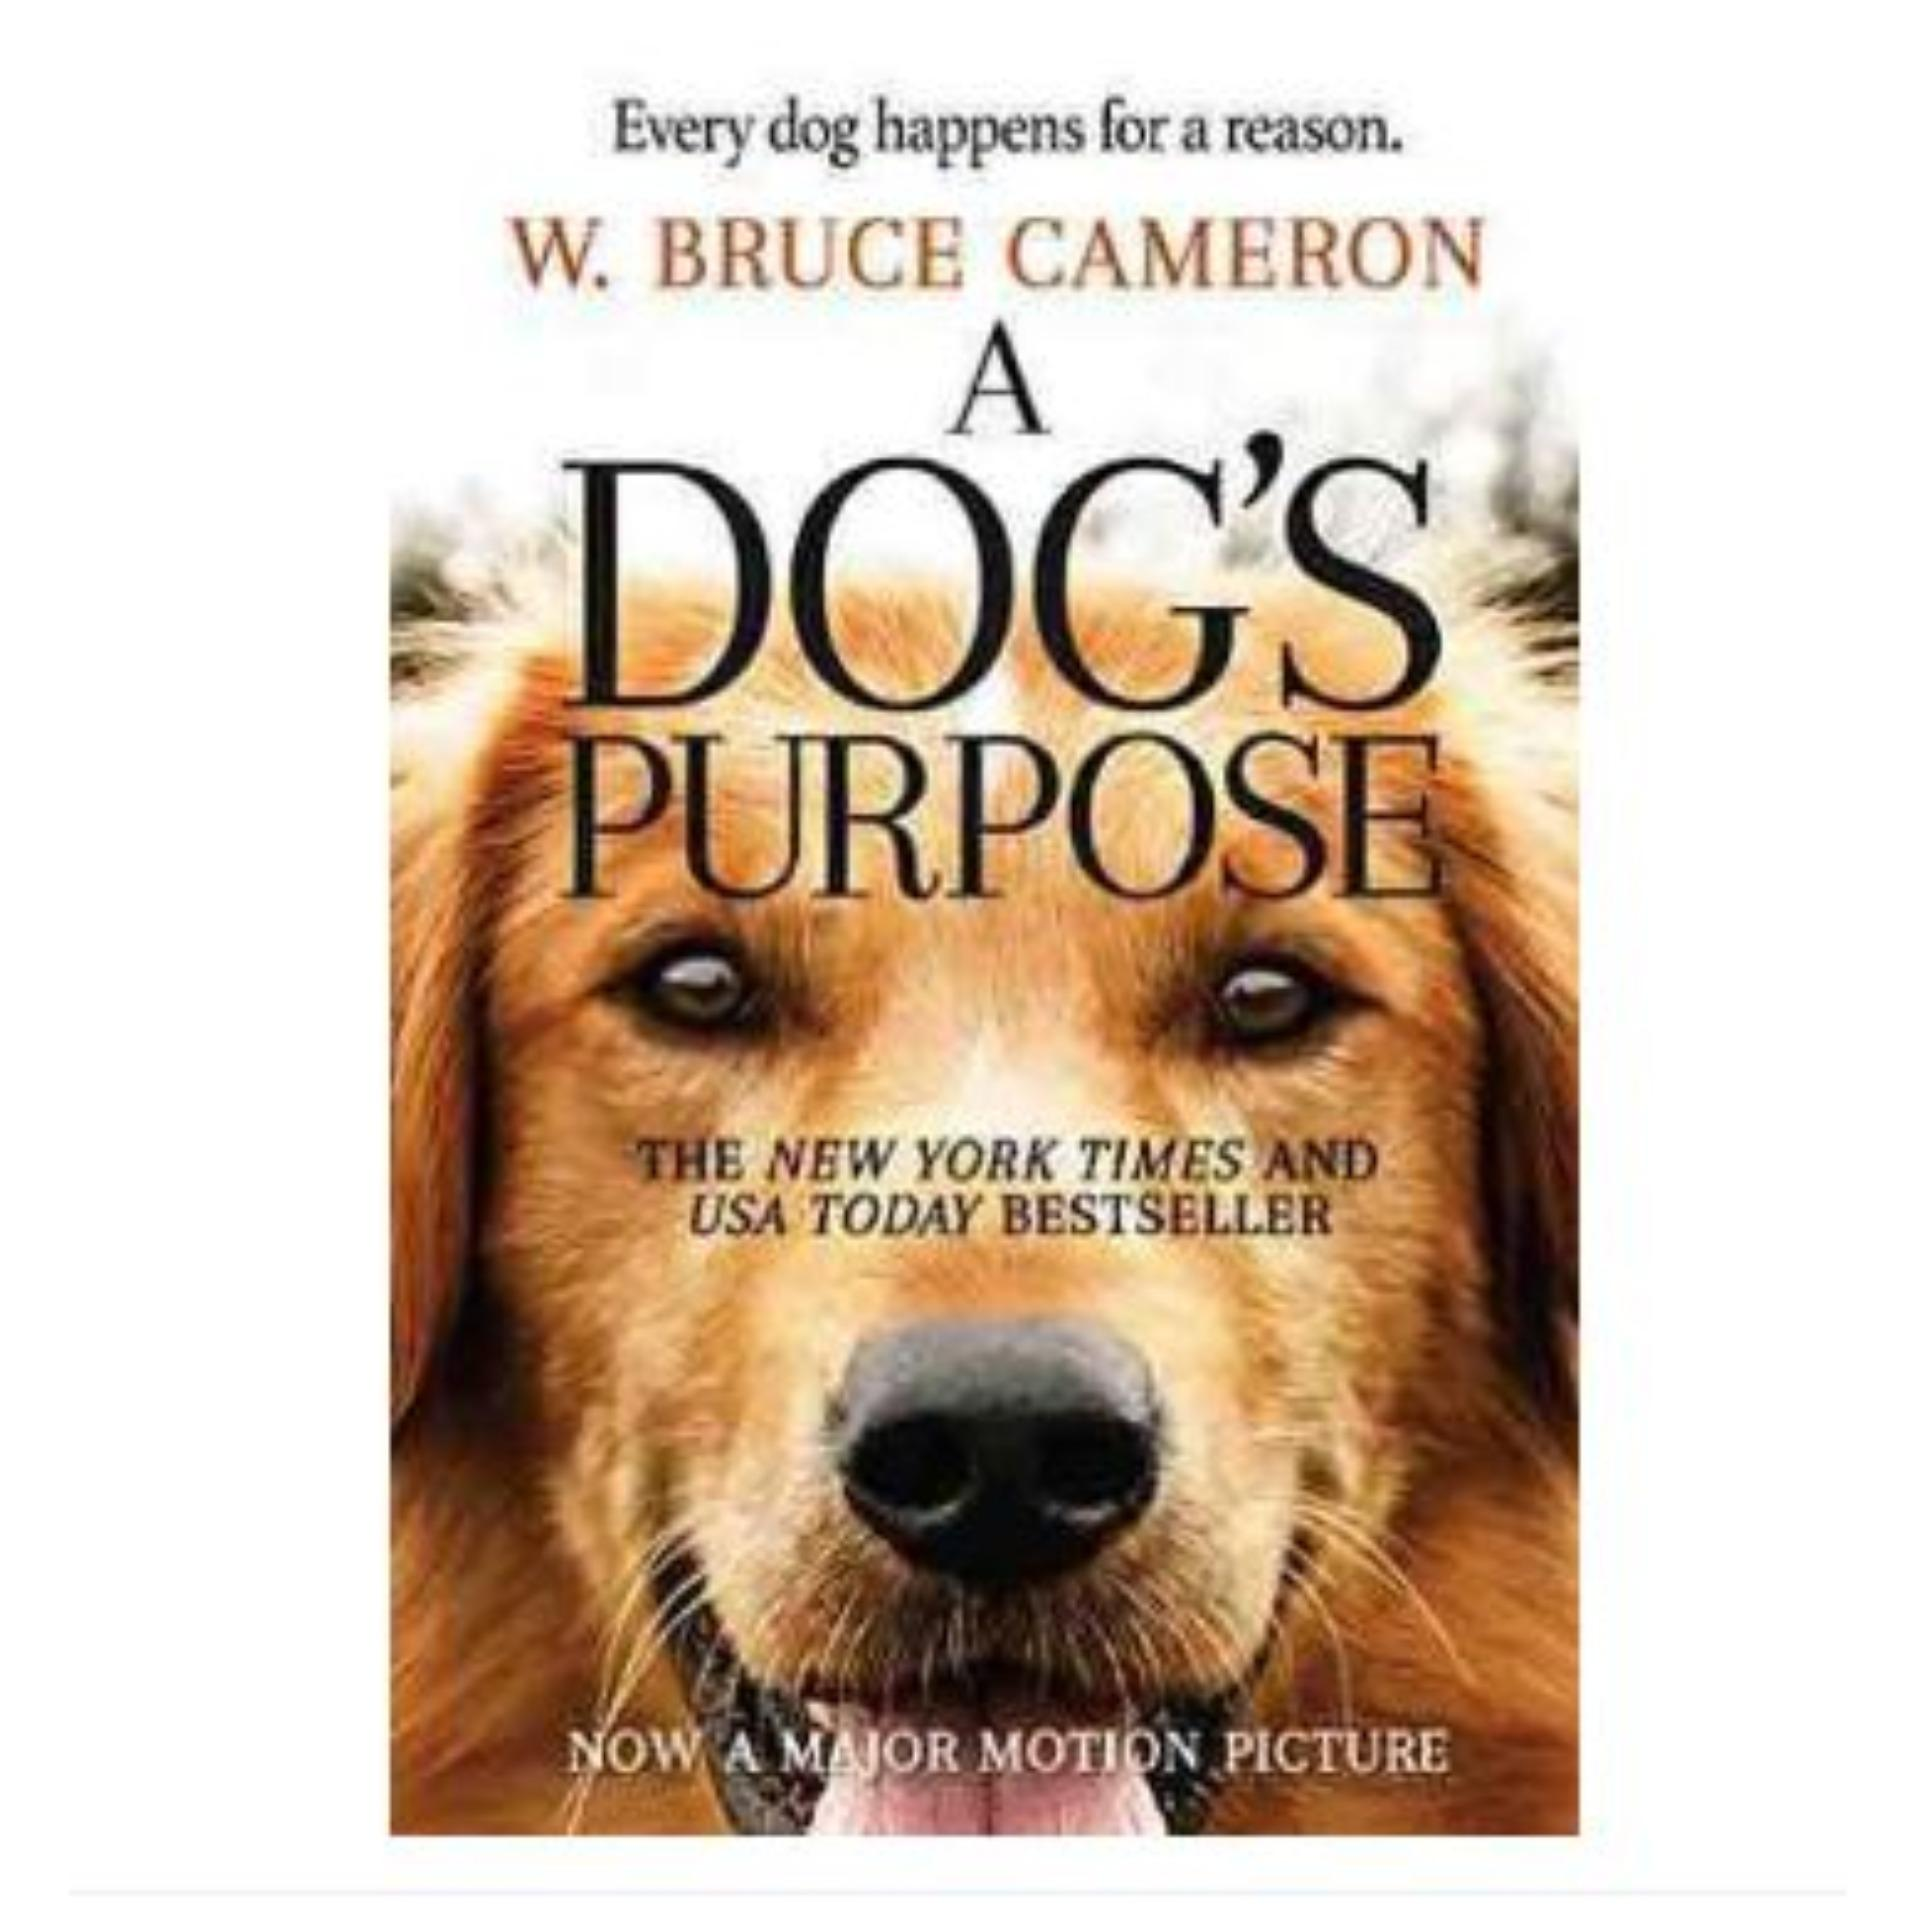 A Dogs Purpose ebook bruce cameron